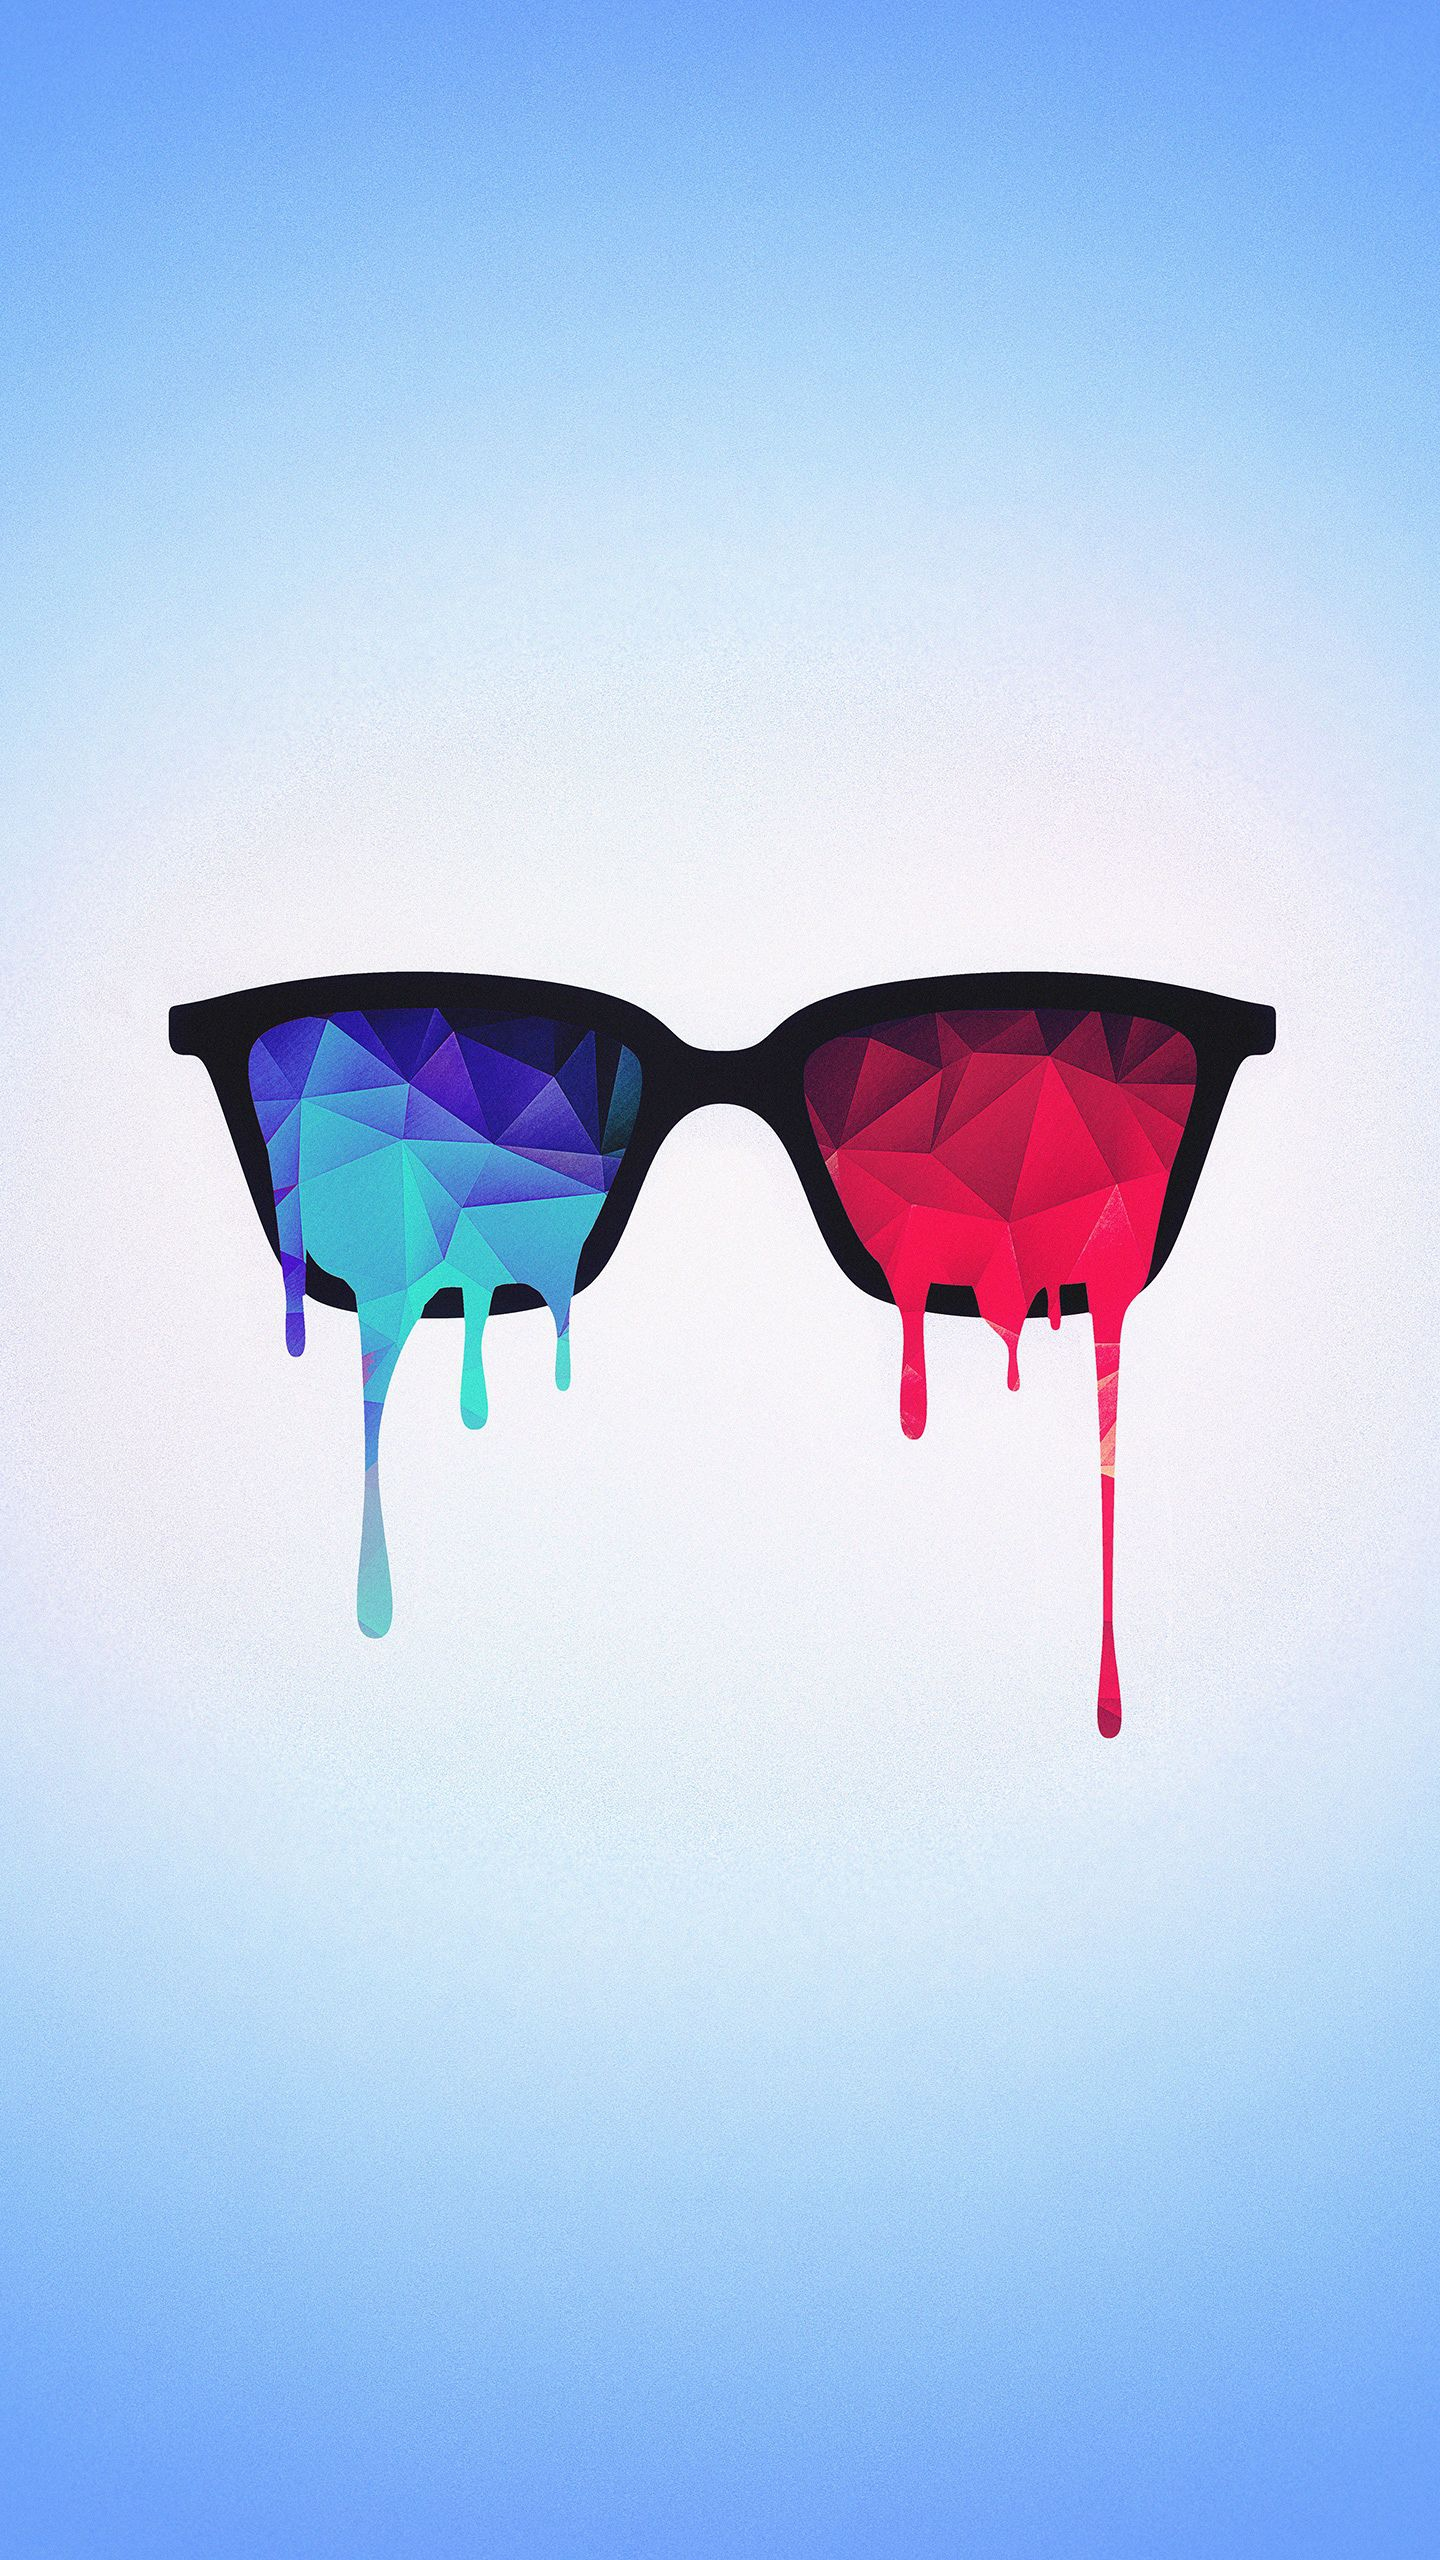 Nerd Glasses Art iPhone Wallpaper iphoneswallpapers com